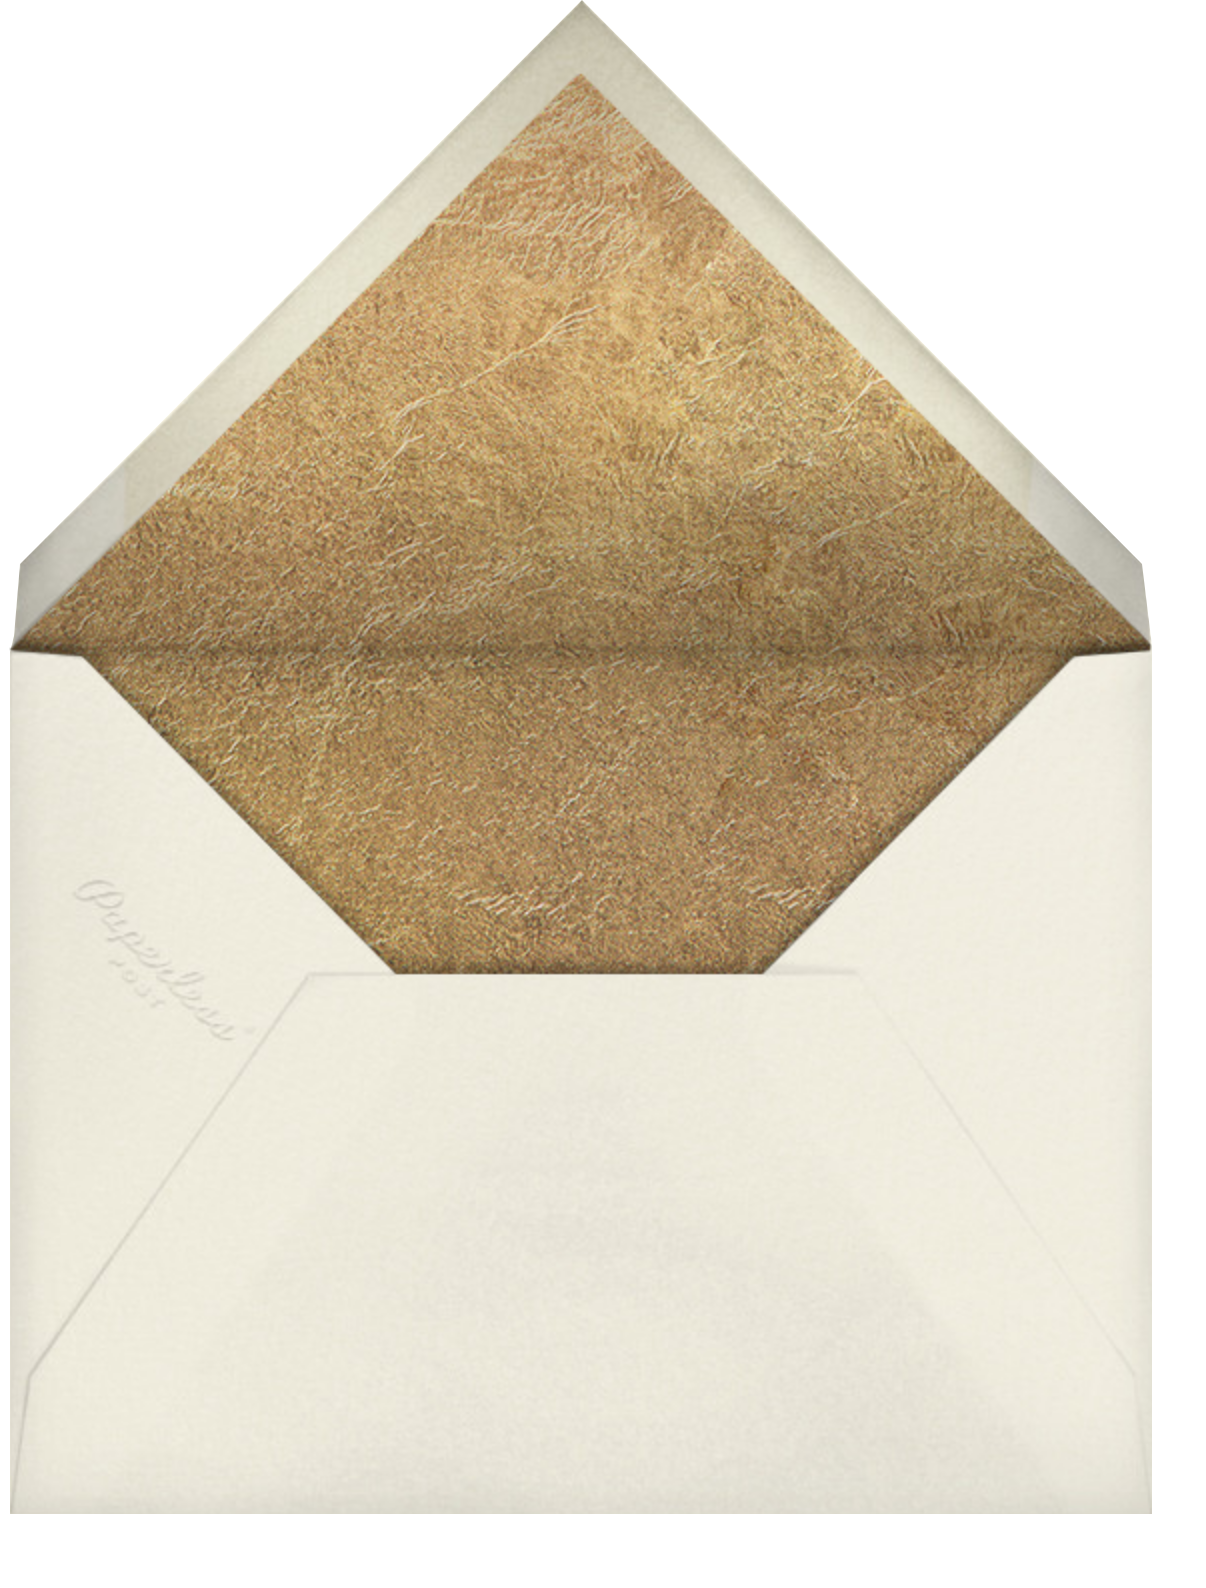 Surge - Gold - Kelly Wearstler - Holiday cards - envelope back